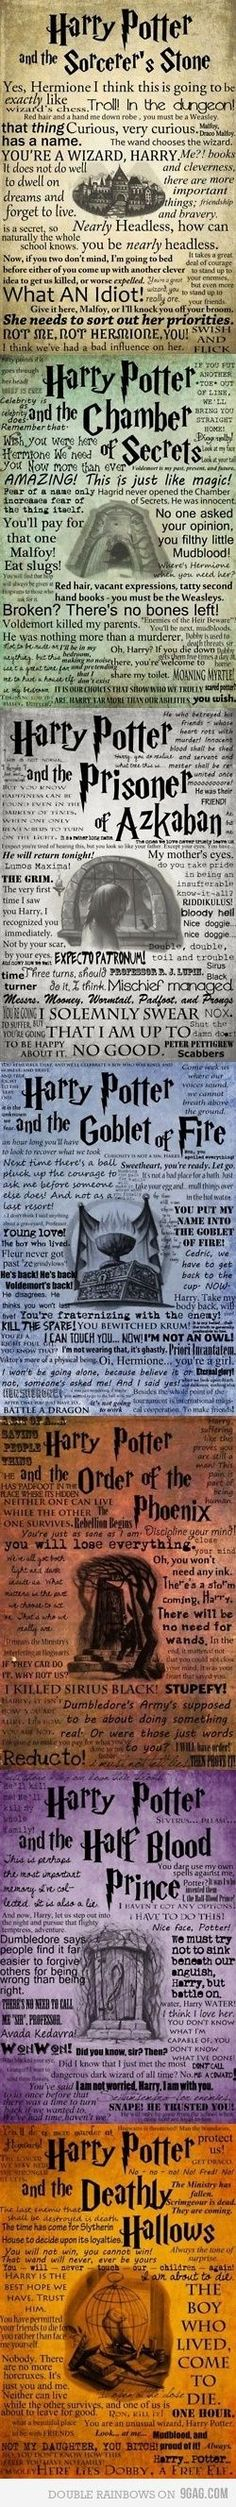 famous quotes from every book 1-7 ;)